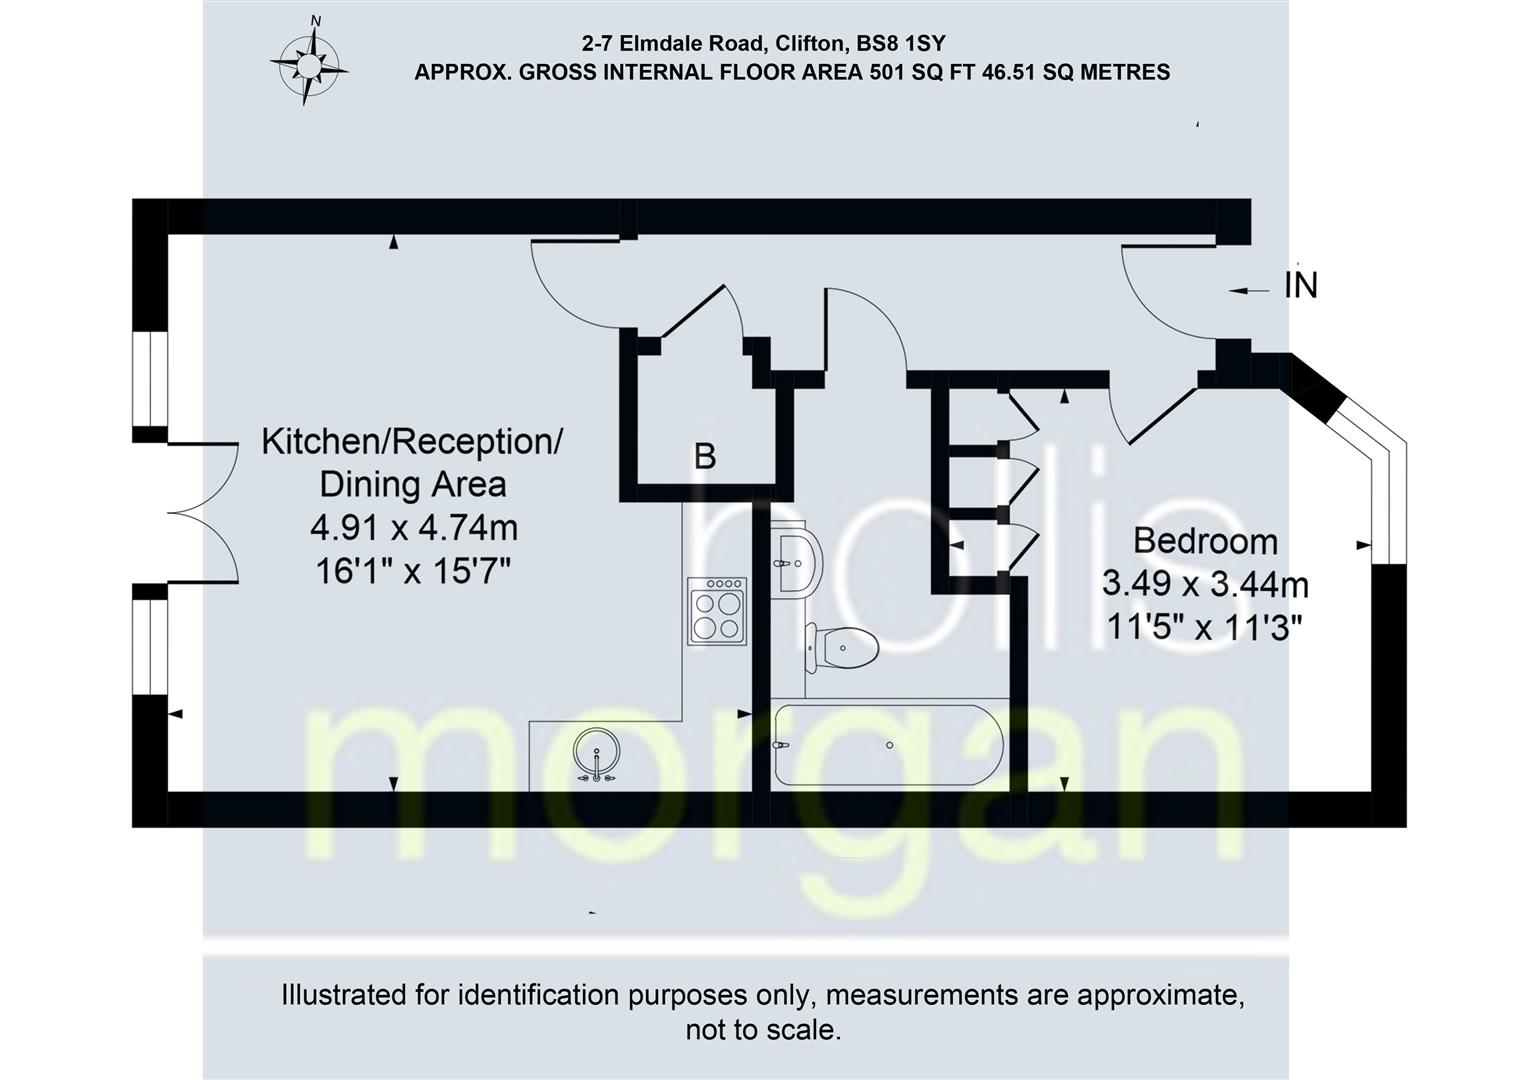 Floorplans For Elmdale Road, Clifton